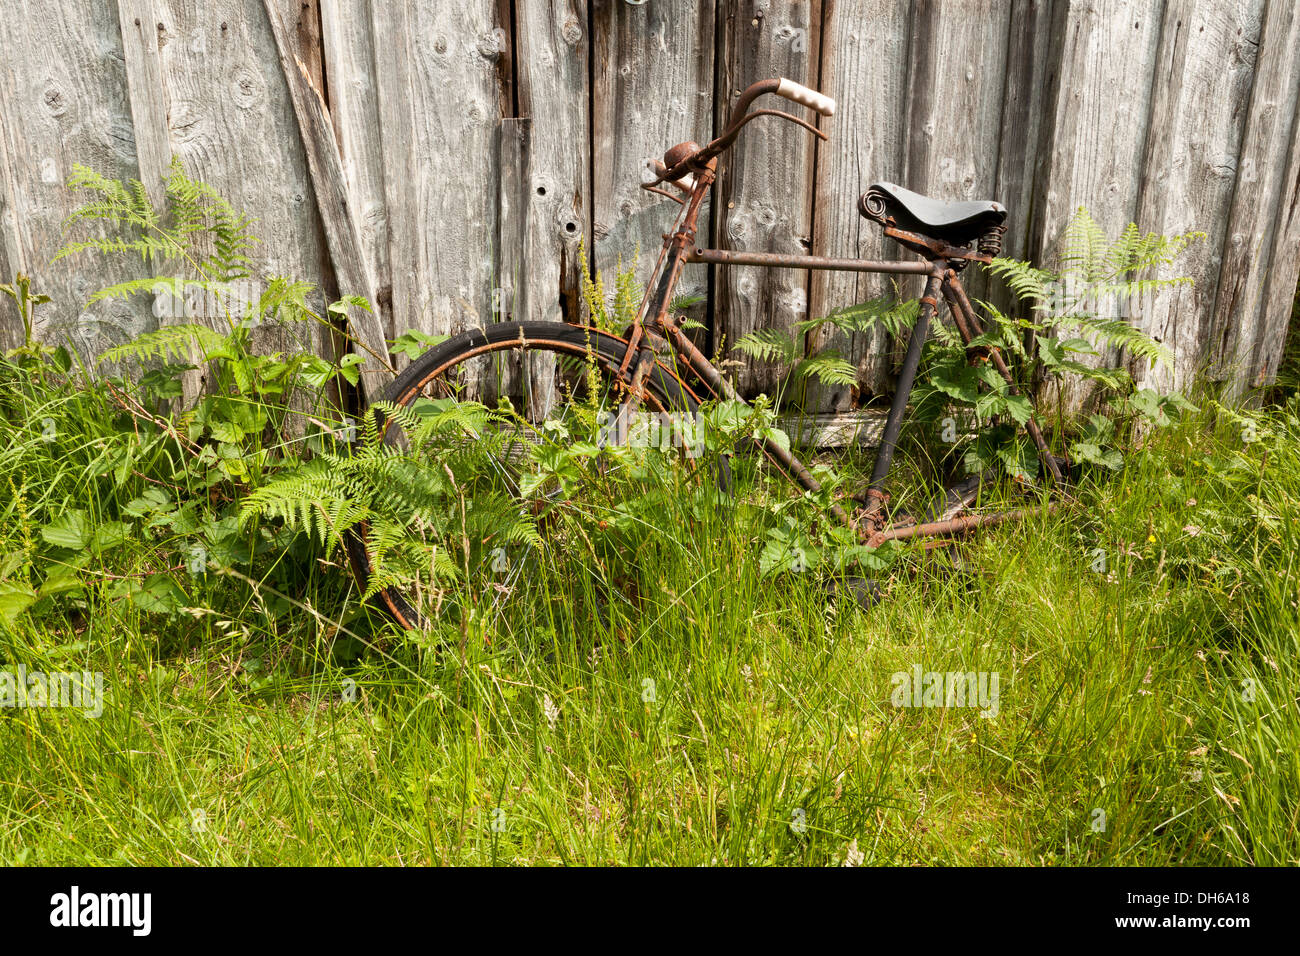 An abandoned rusting bicycle in green undergrowth leaning against a wooden shed Stock Photo